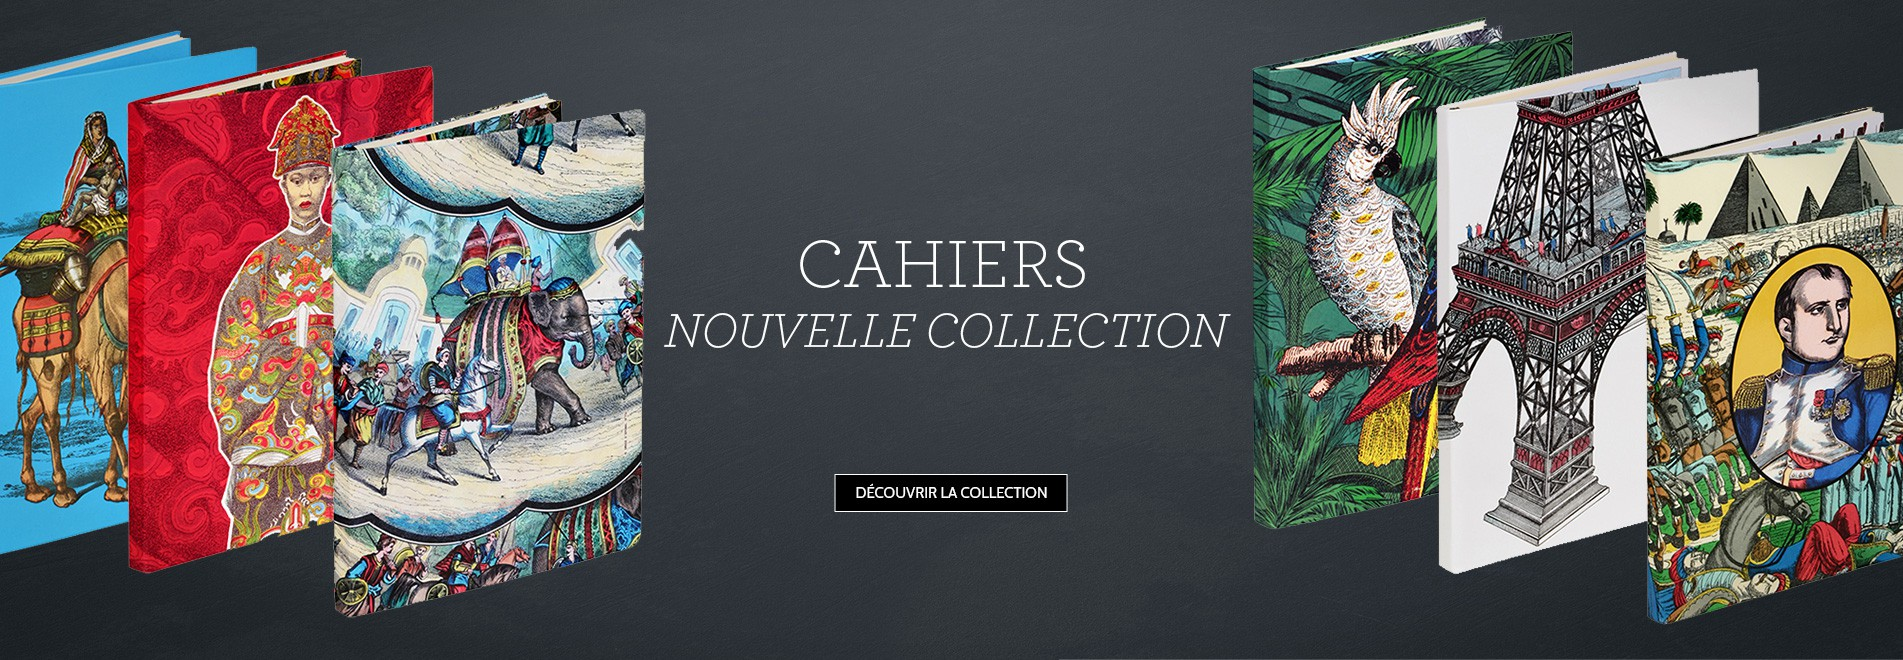 CAHIERS - NOUVELLE COLLECTION